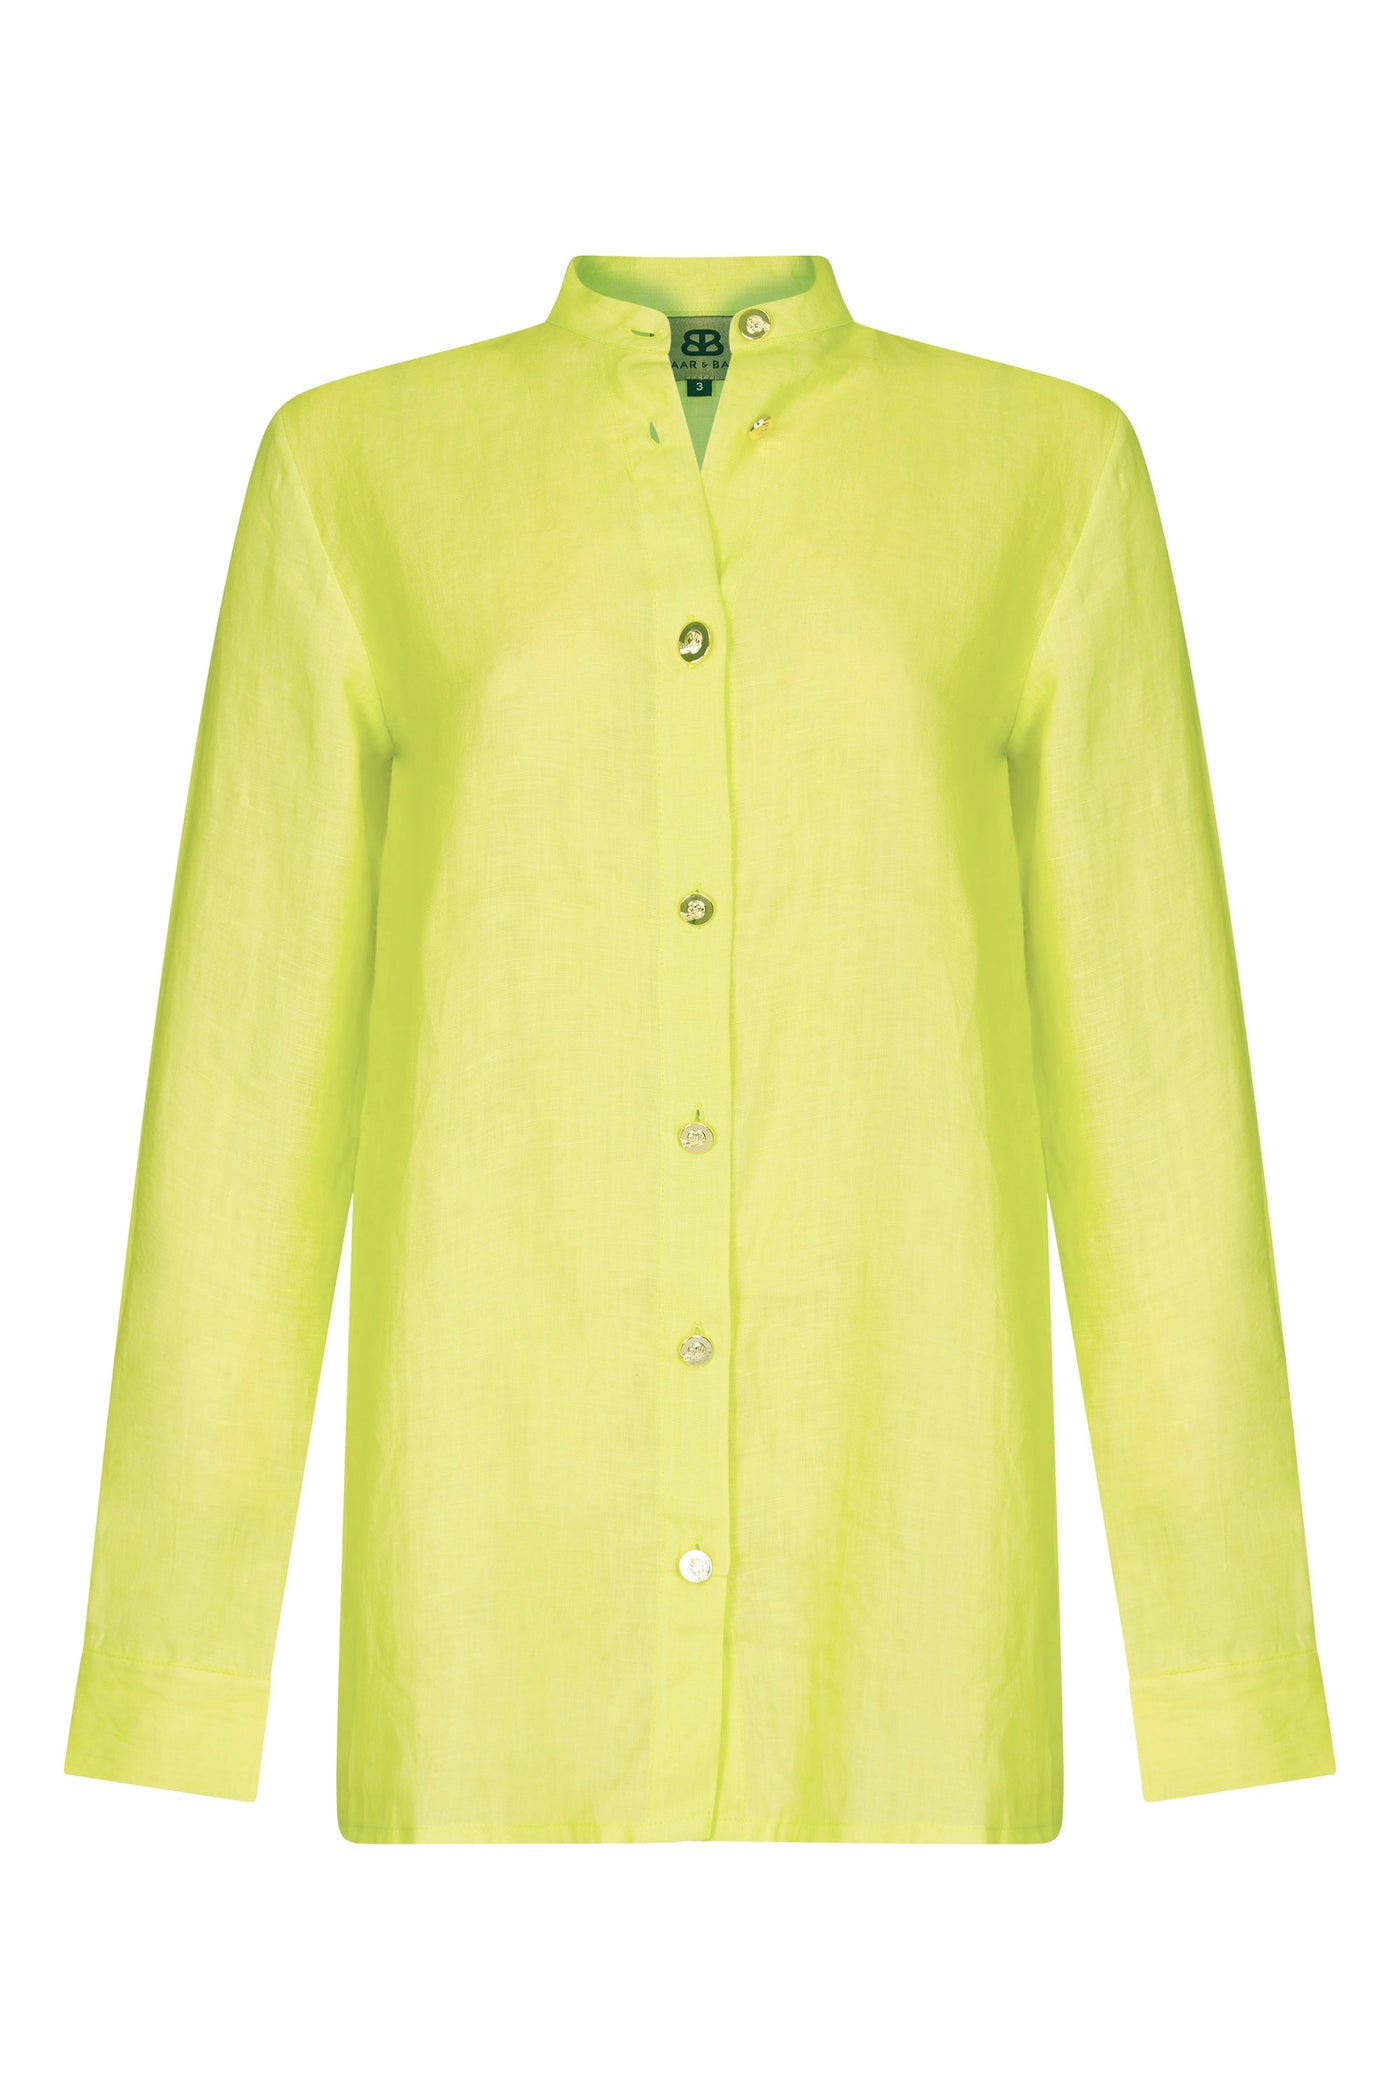 Baar and Bass - Lime Cherie Shirt